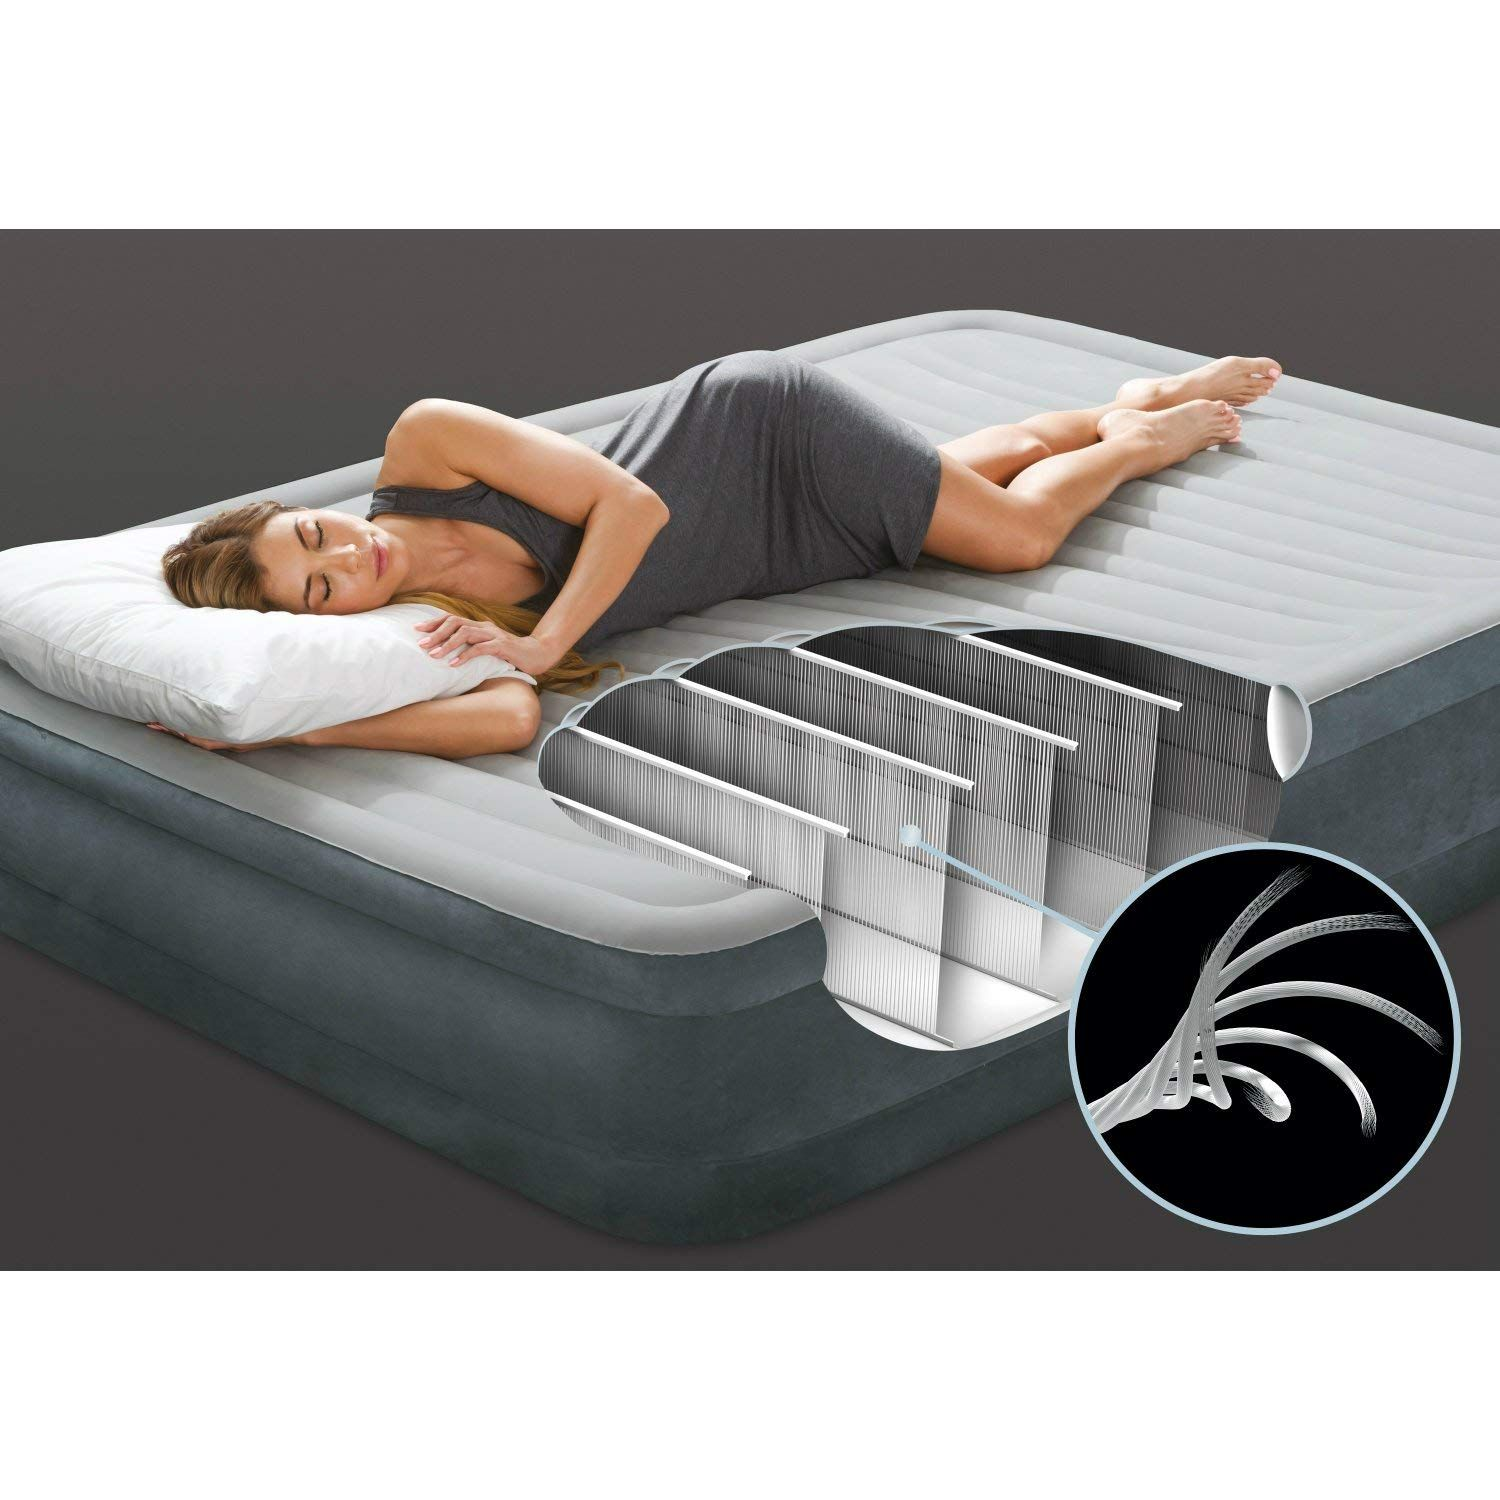 Sports & Outdoors Mattress, Select comfort, Best mattress